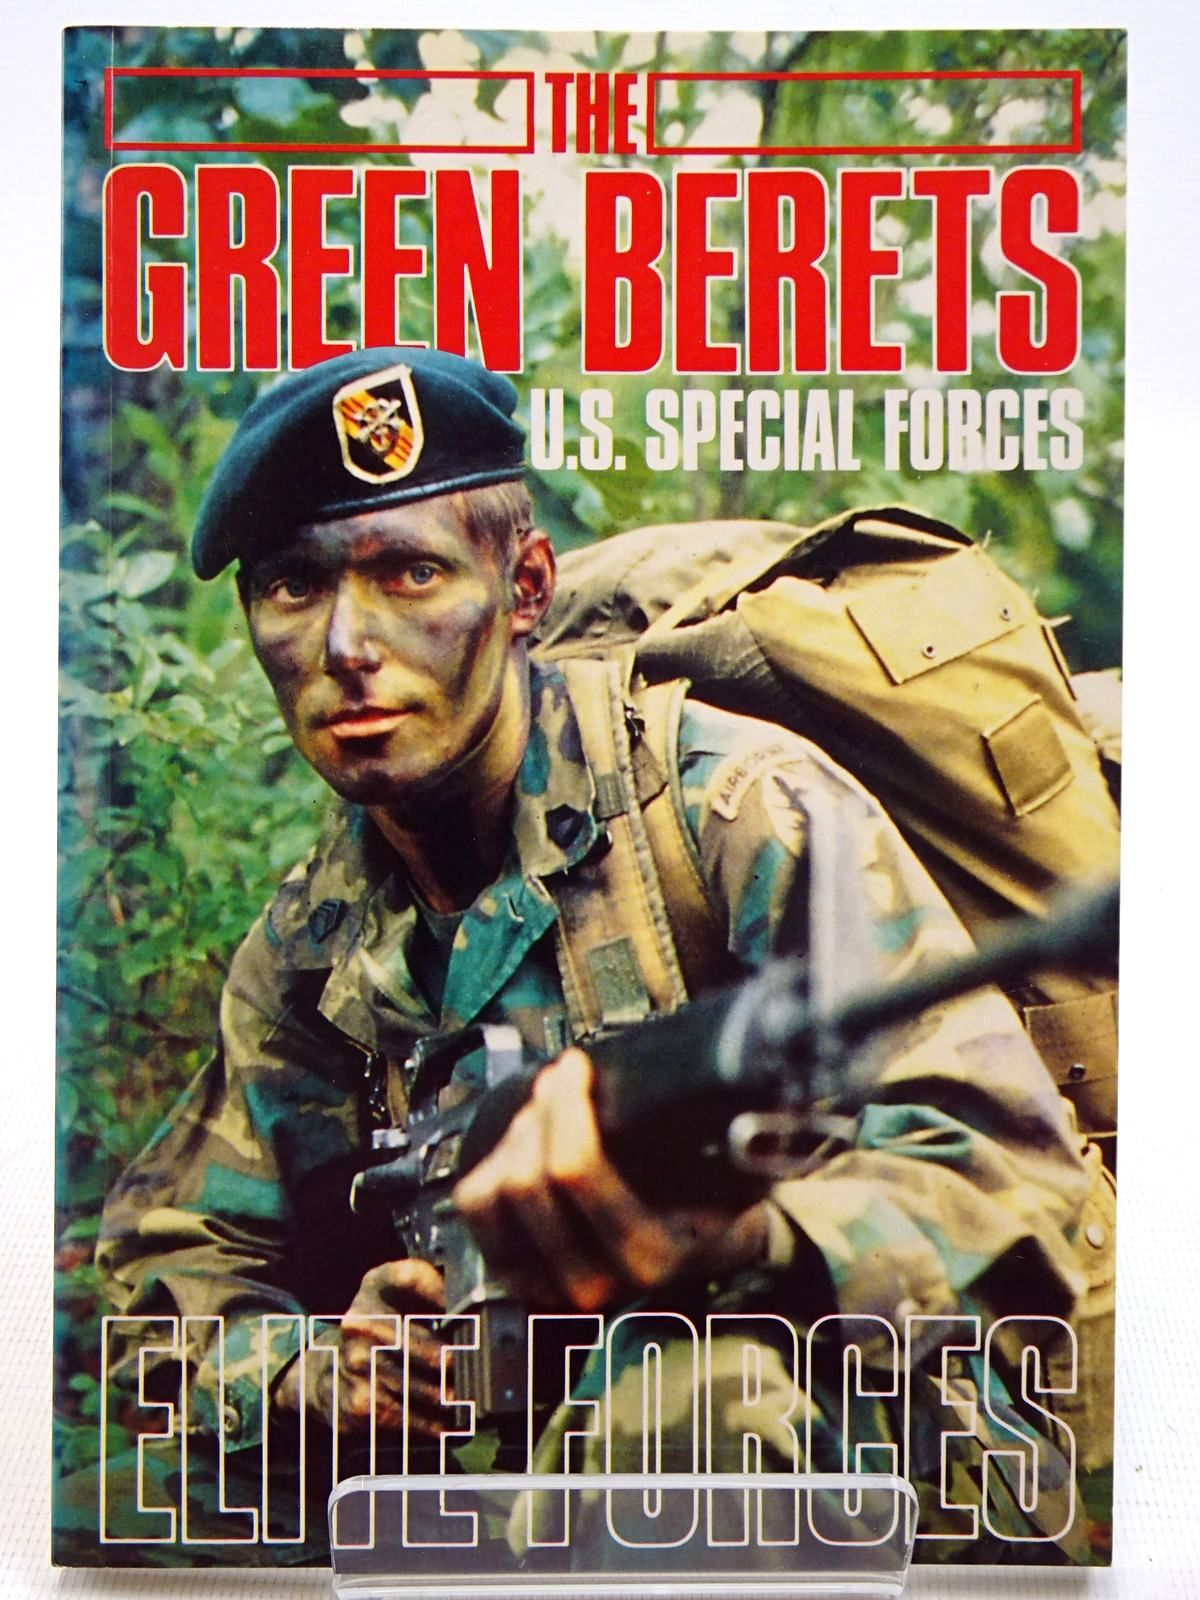 Photo of THE GREEN BERETS U.S. SPECIAL FORCES written by Brown, Ashley<br />et al, published by Orbis Publishing (STOCK CODE: 2129180)  for sale by Stella & Rose's Books